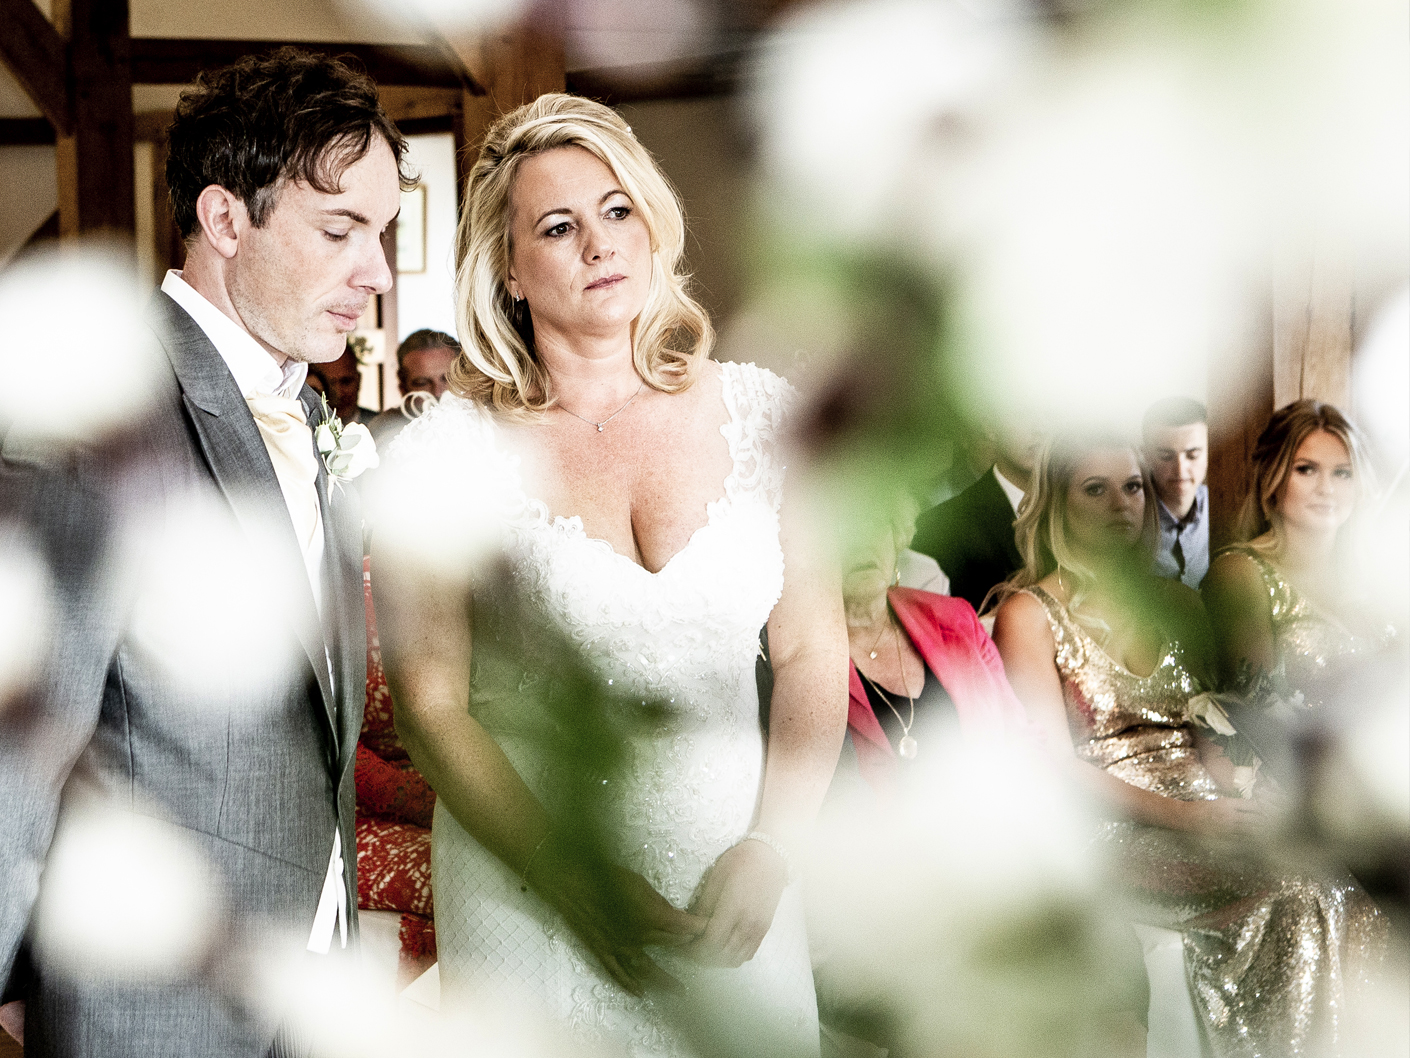 photography-of-the-wedding-ceremony-at-sandhole-oak-barn-congleton-cheshire